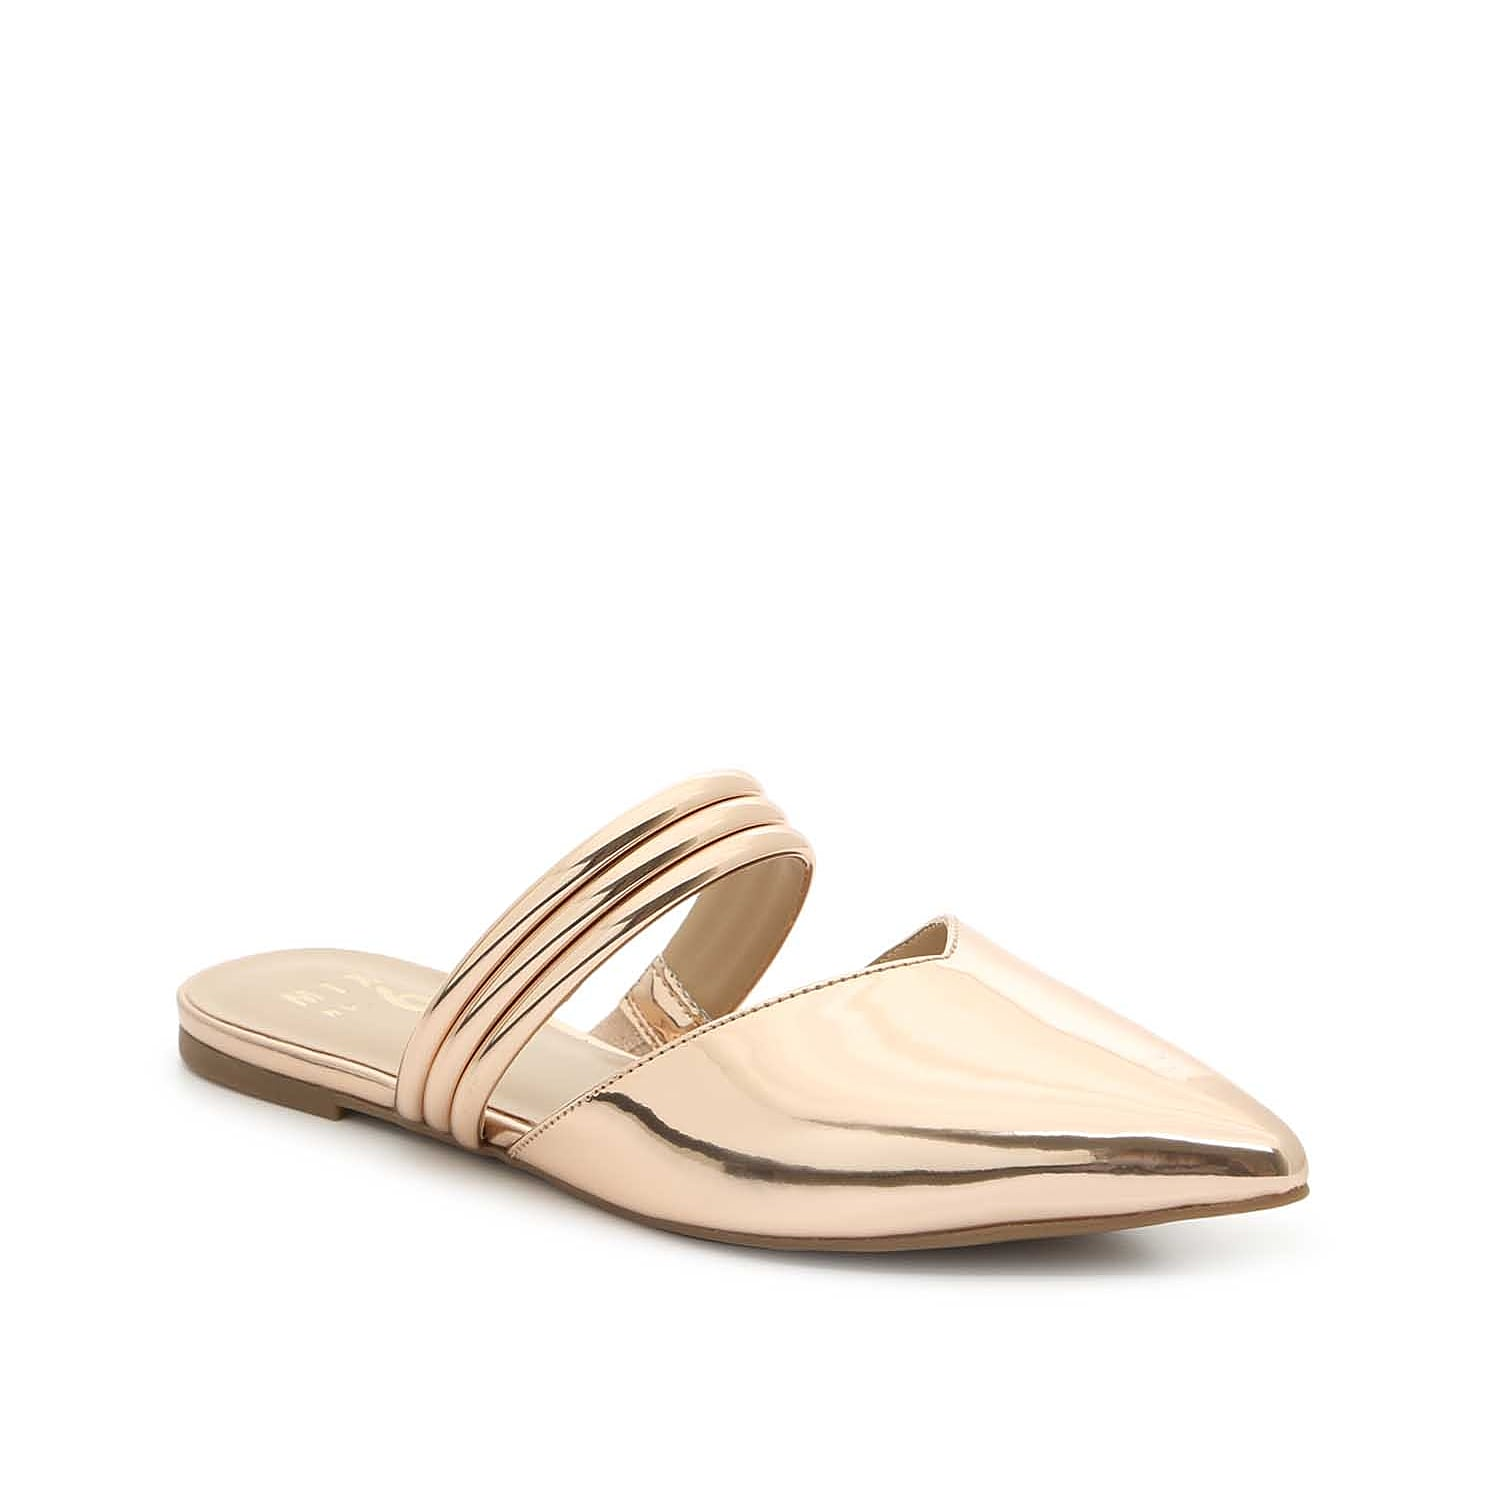 Slide into trendy appeal with the Izabela mule from Mix No. 6. With a sweetheart topline and rolled straps, this slip-on will streamline tailored looks.